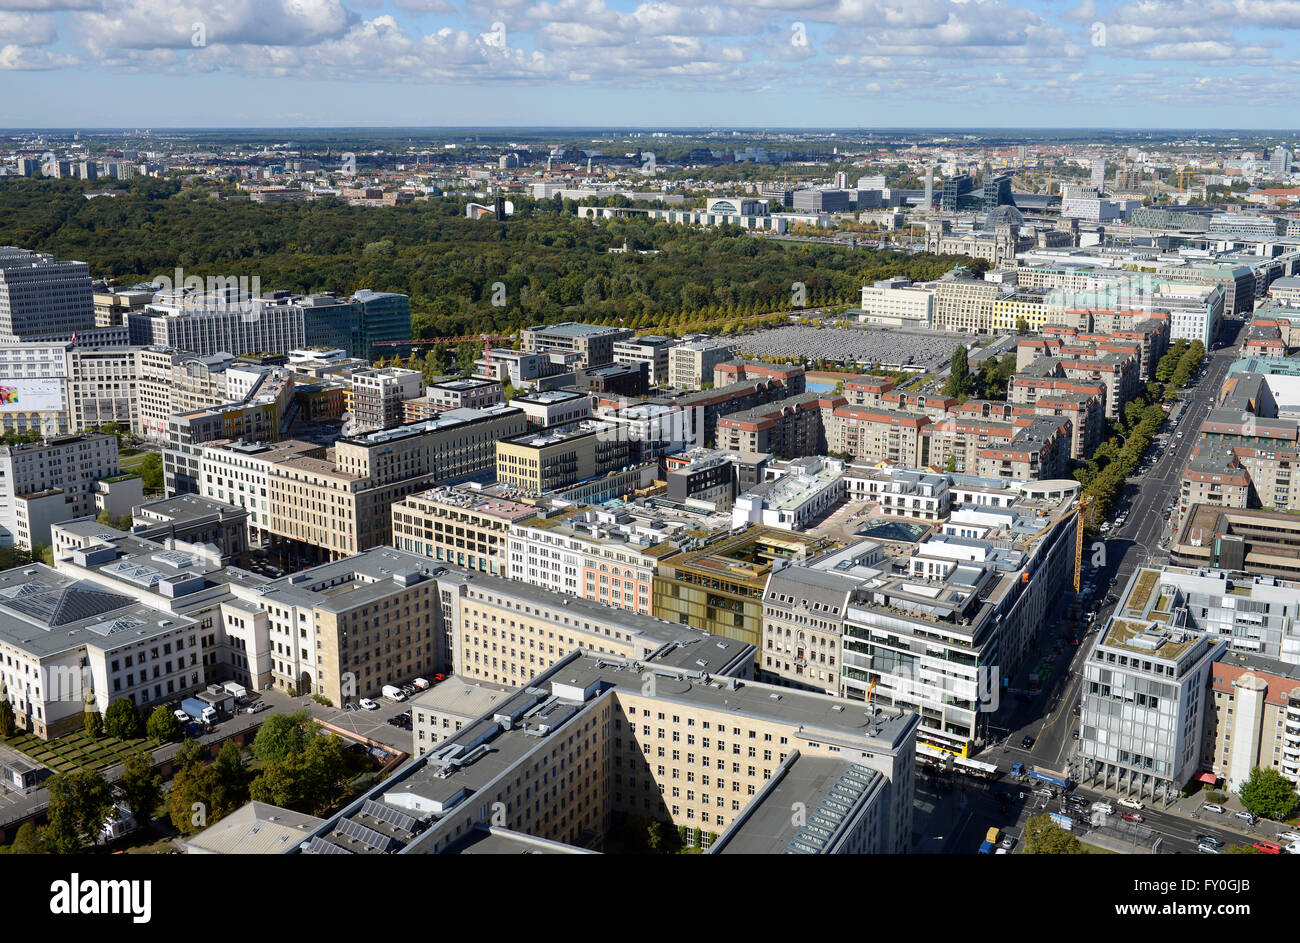 einkaufszentrum lp12 mall of berlin leipziger platz mitte berlin stock photo 102660611 alamy. Black Bedroom Furniture Sets. Home Design Ideas